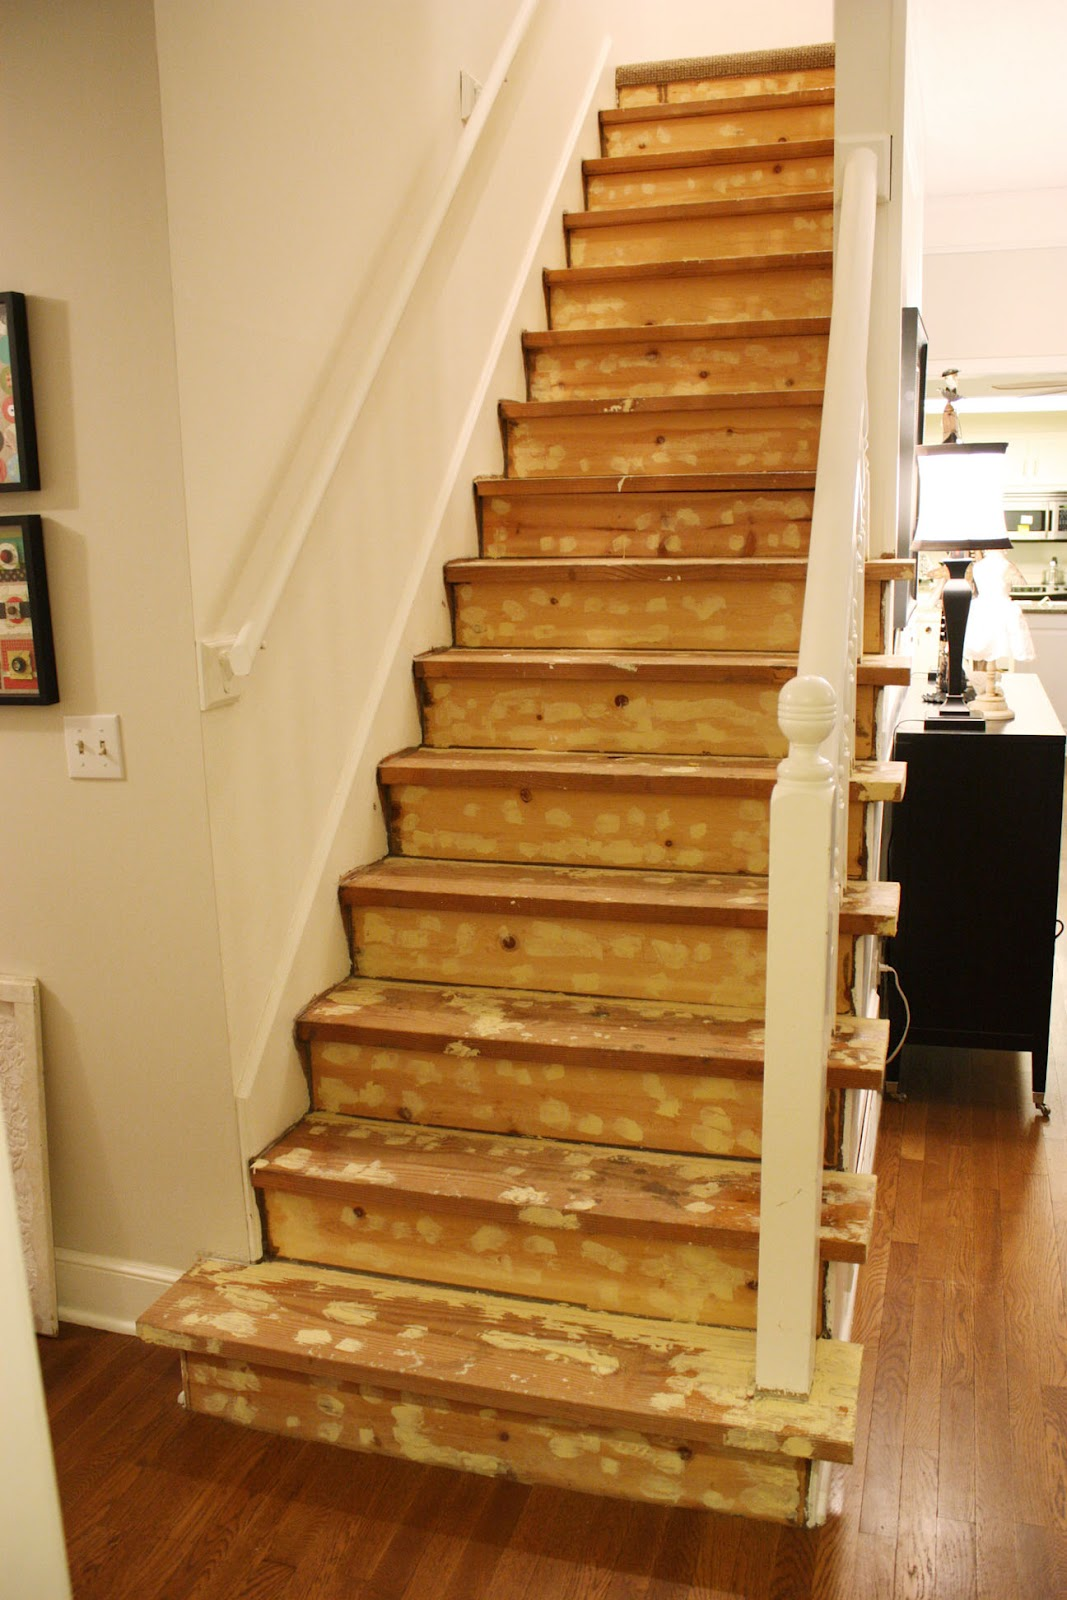 Painted stairs project valerie pillow - Painted stairs ideas pictures ...